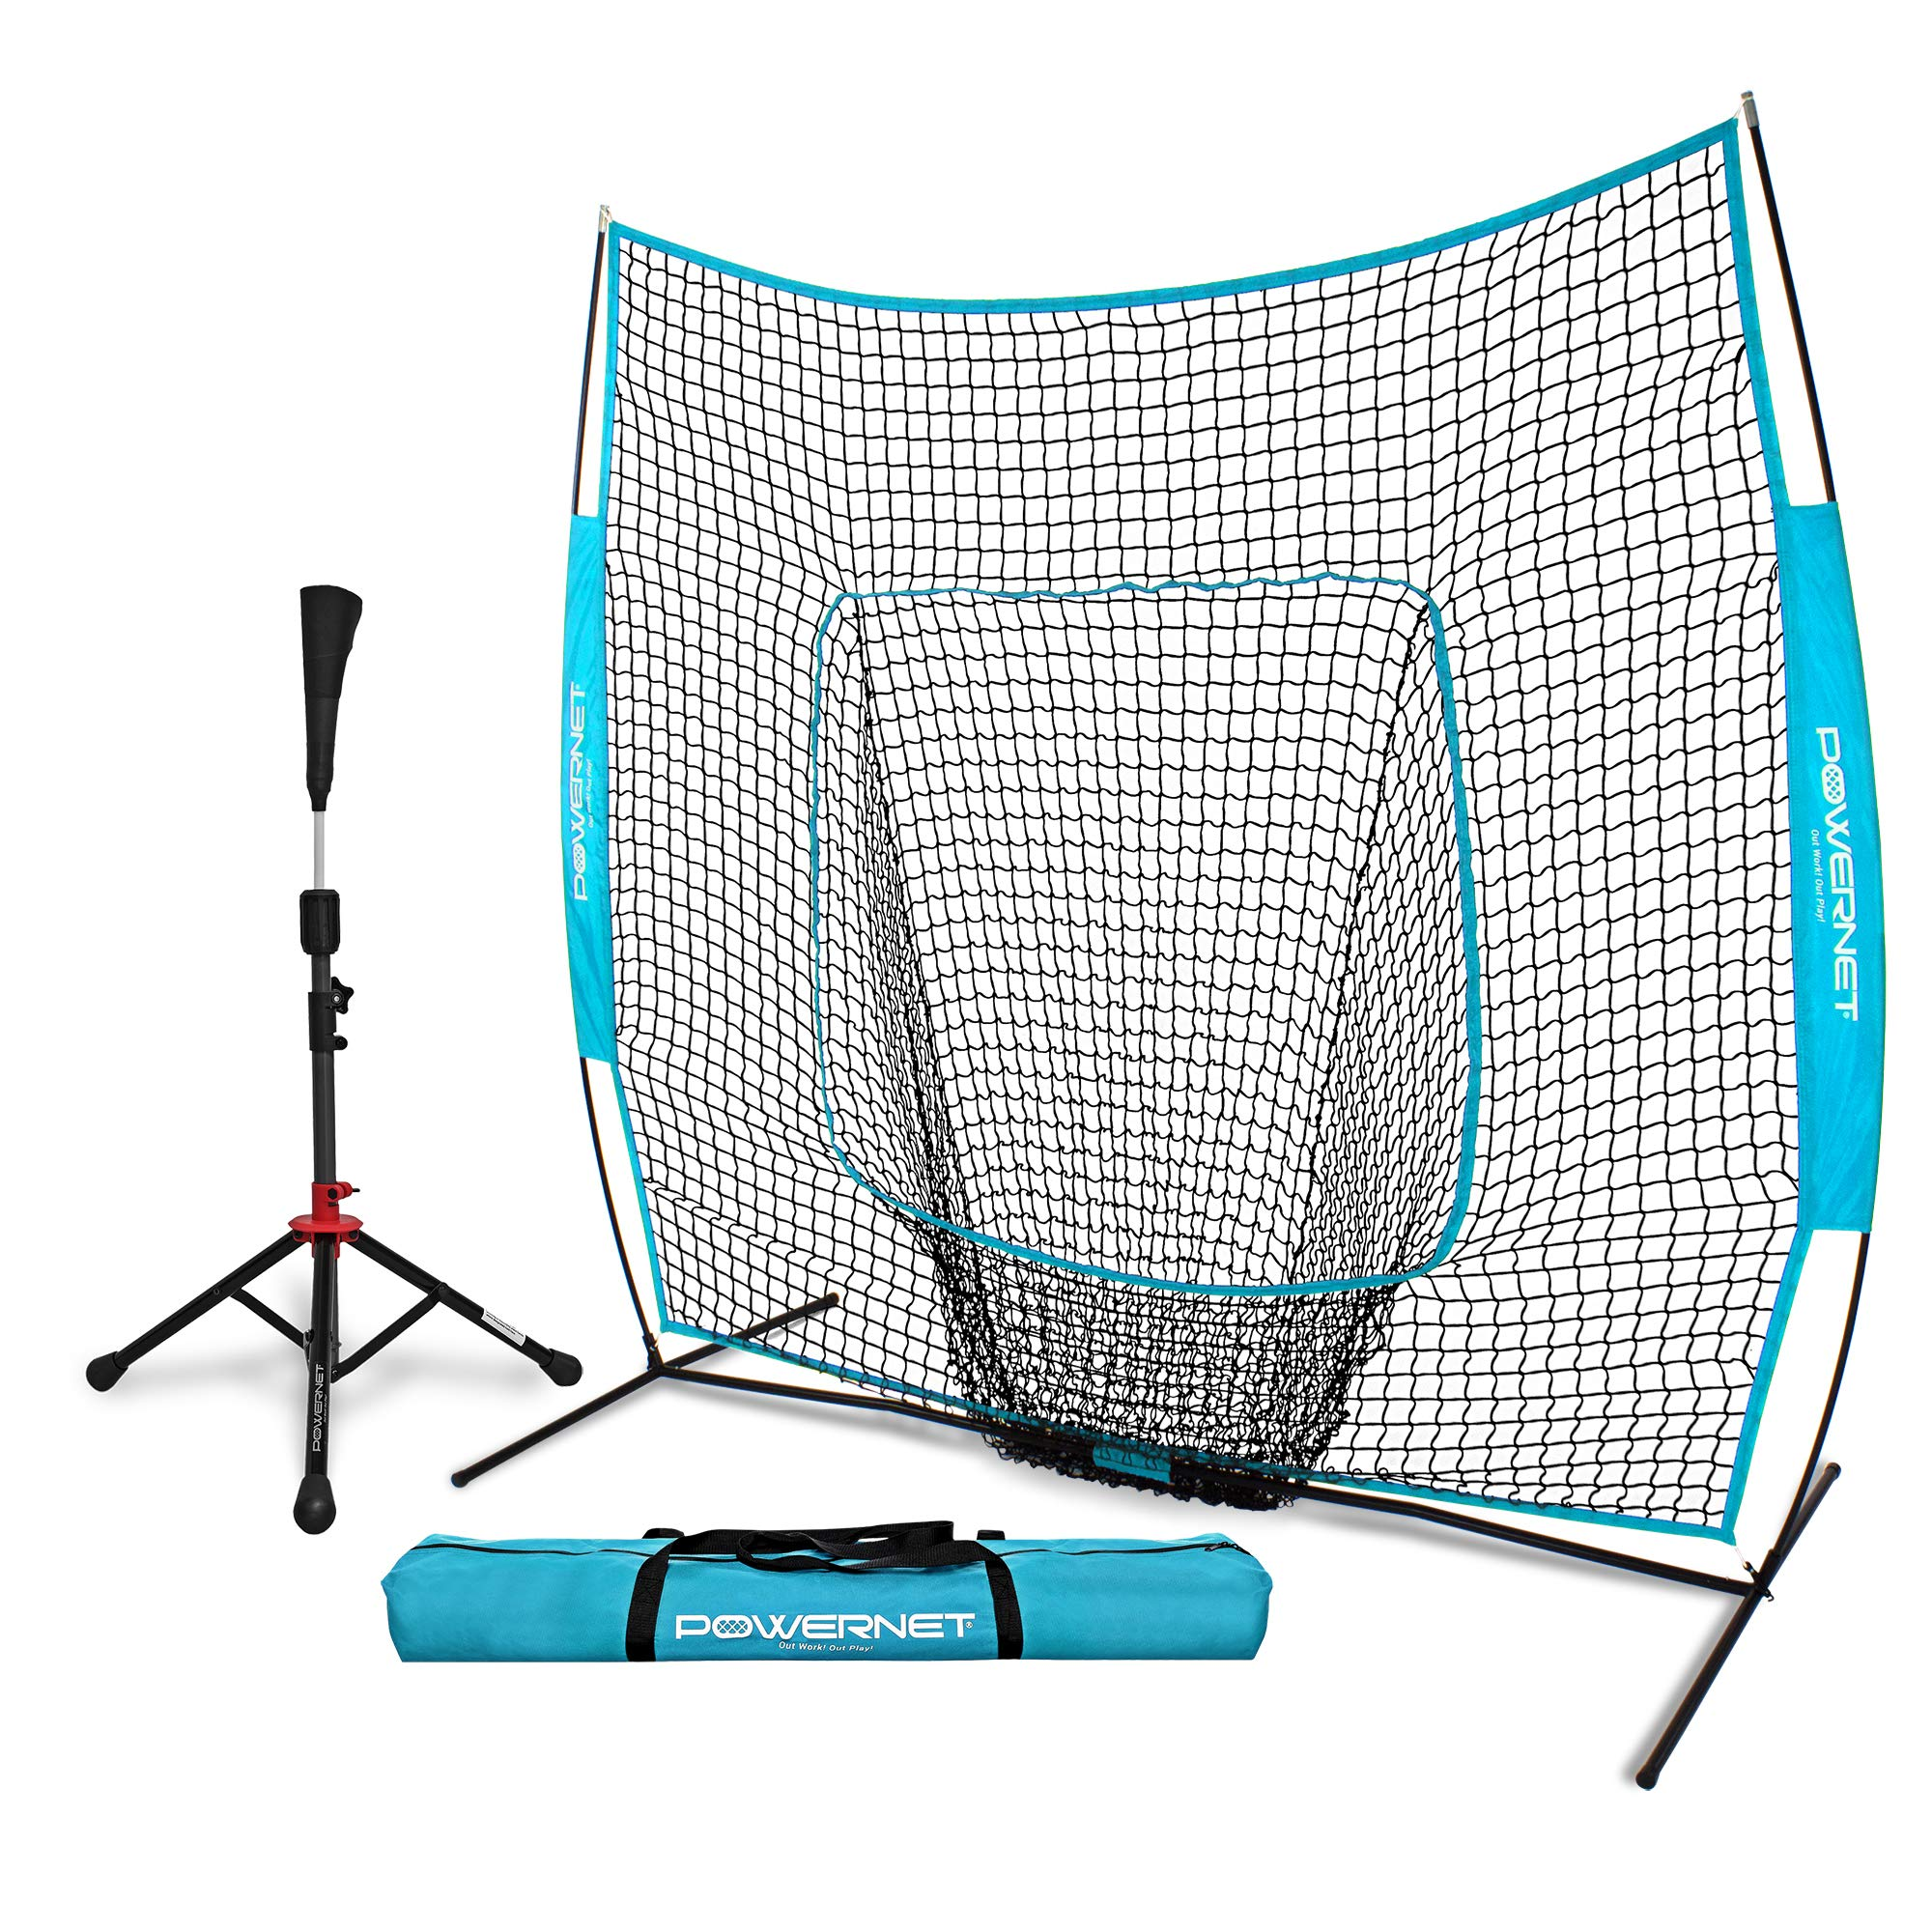 PowerNet Baseball Softball Practice Net 7x7 with Deluxe Tee (Sky Blue) | Practice Hitting, Pitching, Batting, Fielding | Portable, Backstop, Training Aid, Bow Frame | Training Equipment by PowerNet